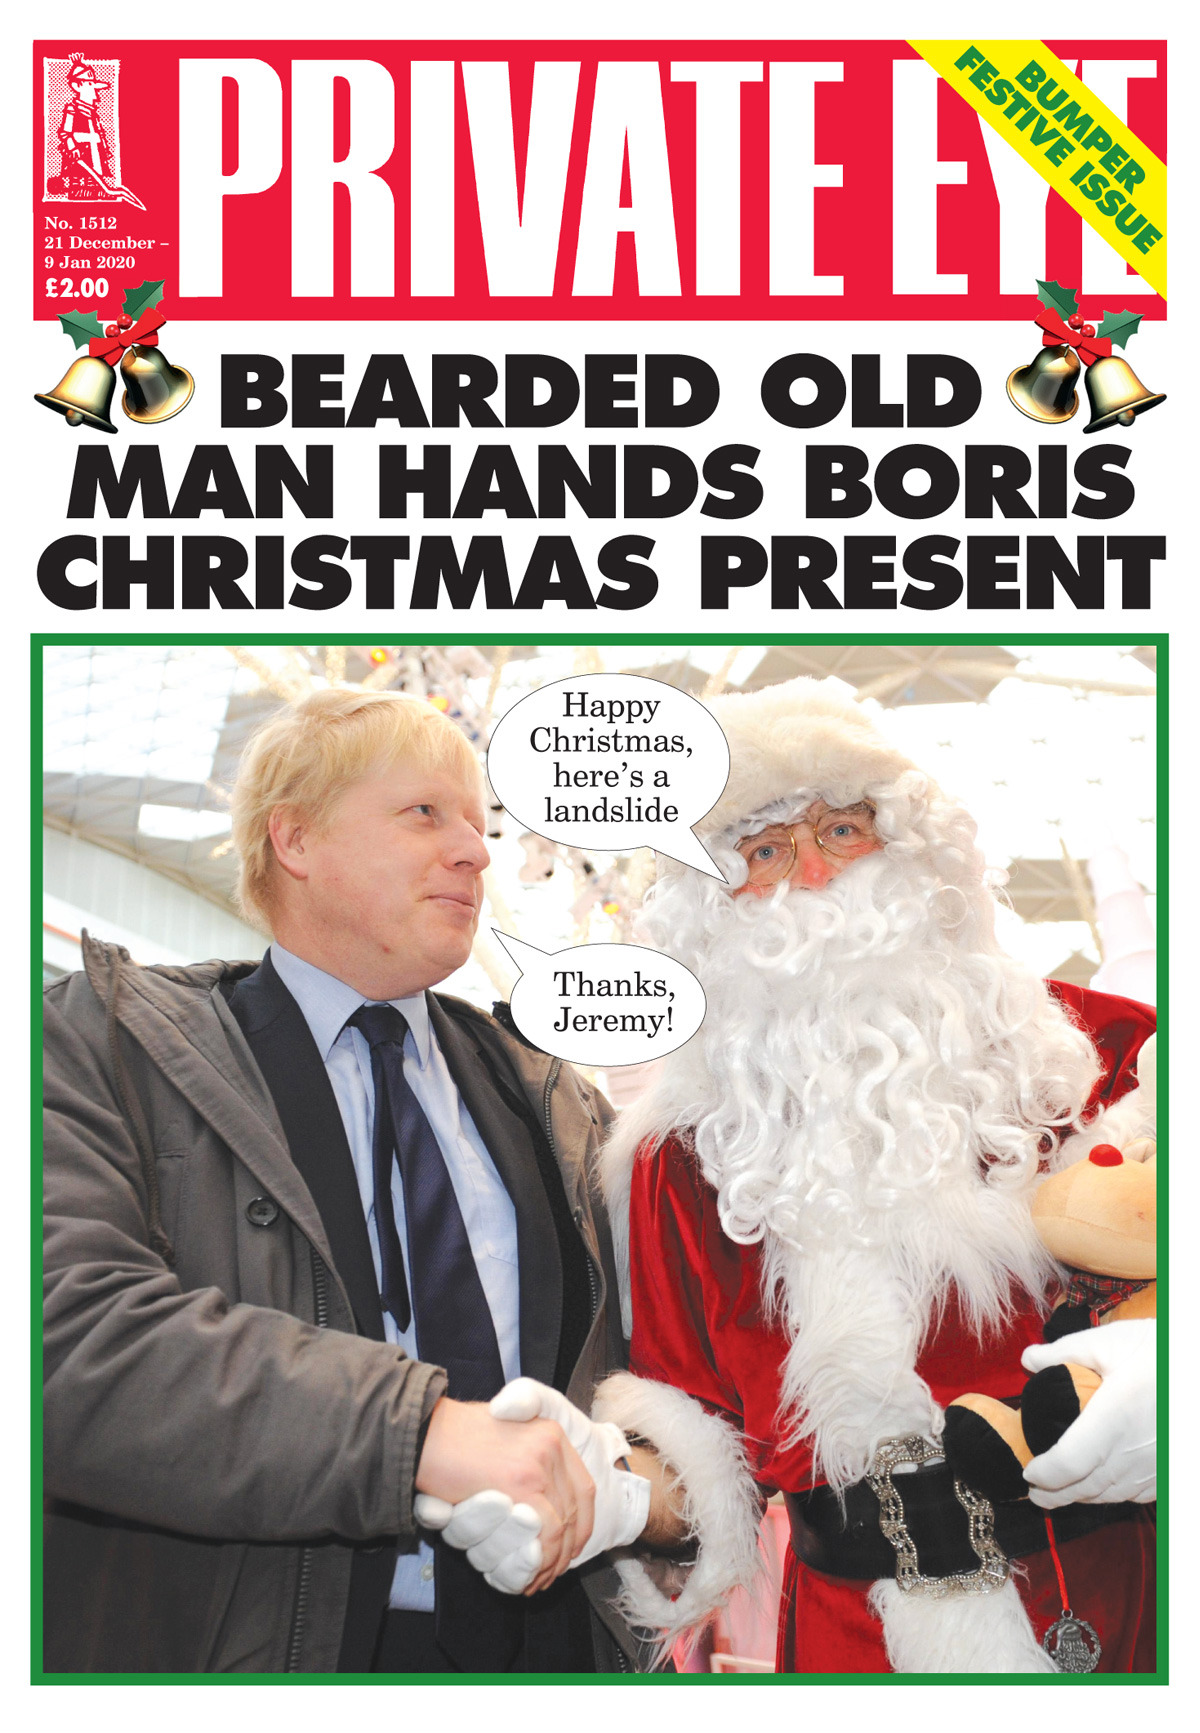 Private Eye Issue 1512